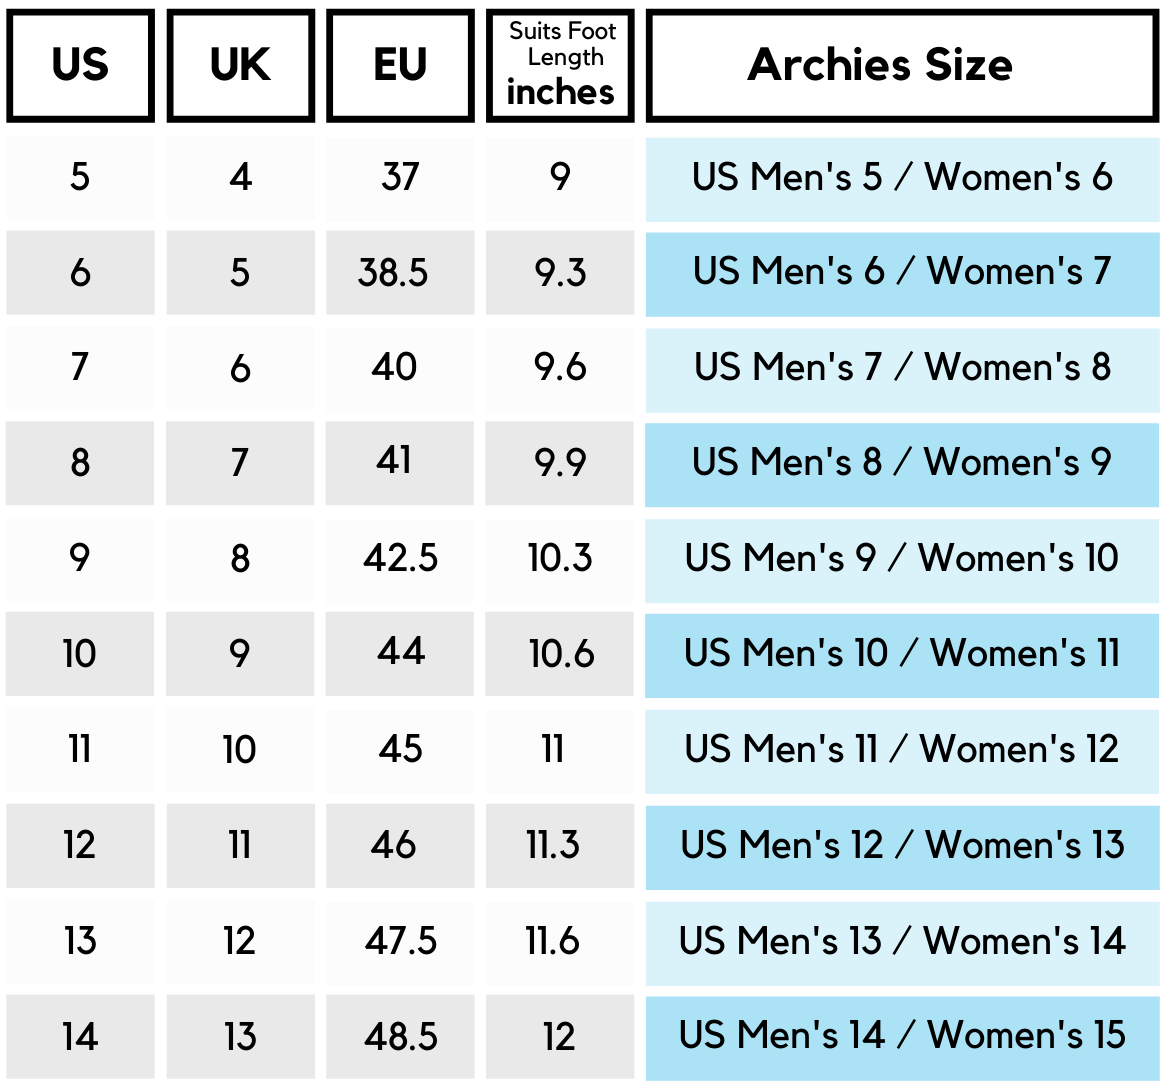 Archies US Men's Size Guide